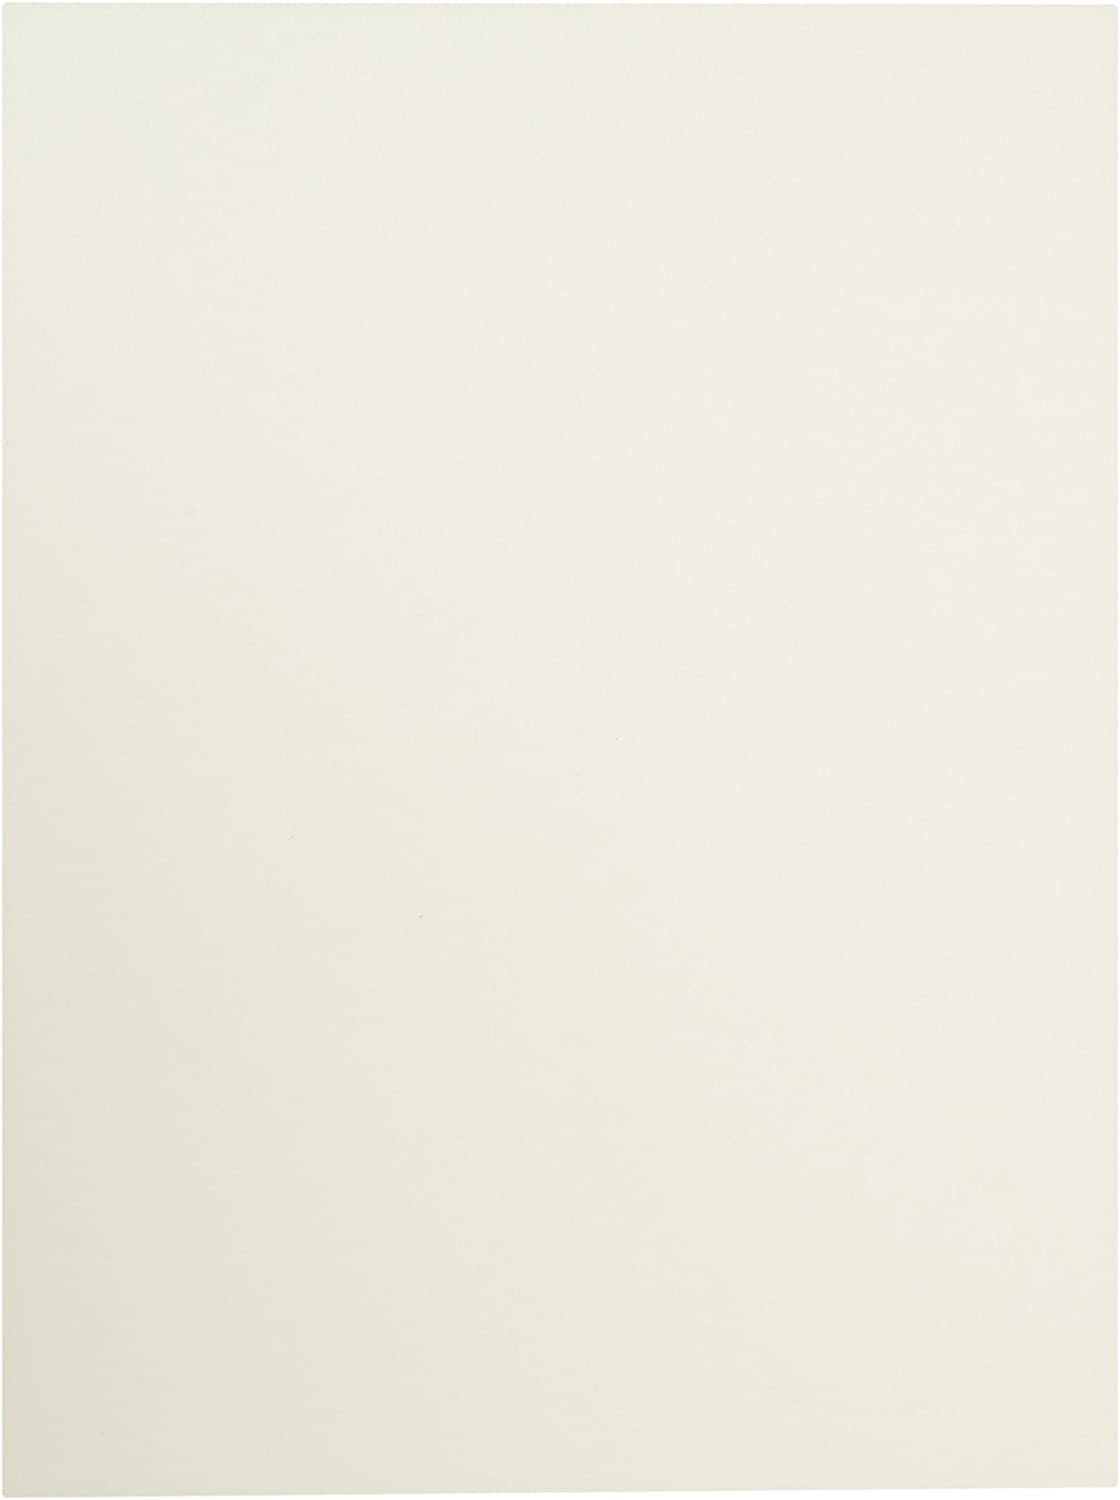 Sax Watercolor Paper Beginner Paper, 9 x 12 Inches, Natural White, Pack of 100 - 408400: Industrial & Scientific